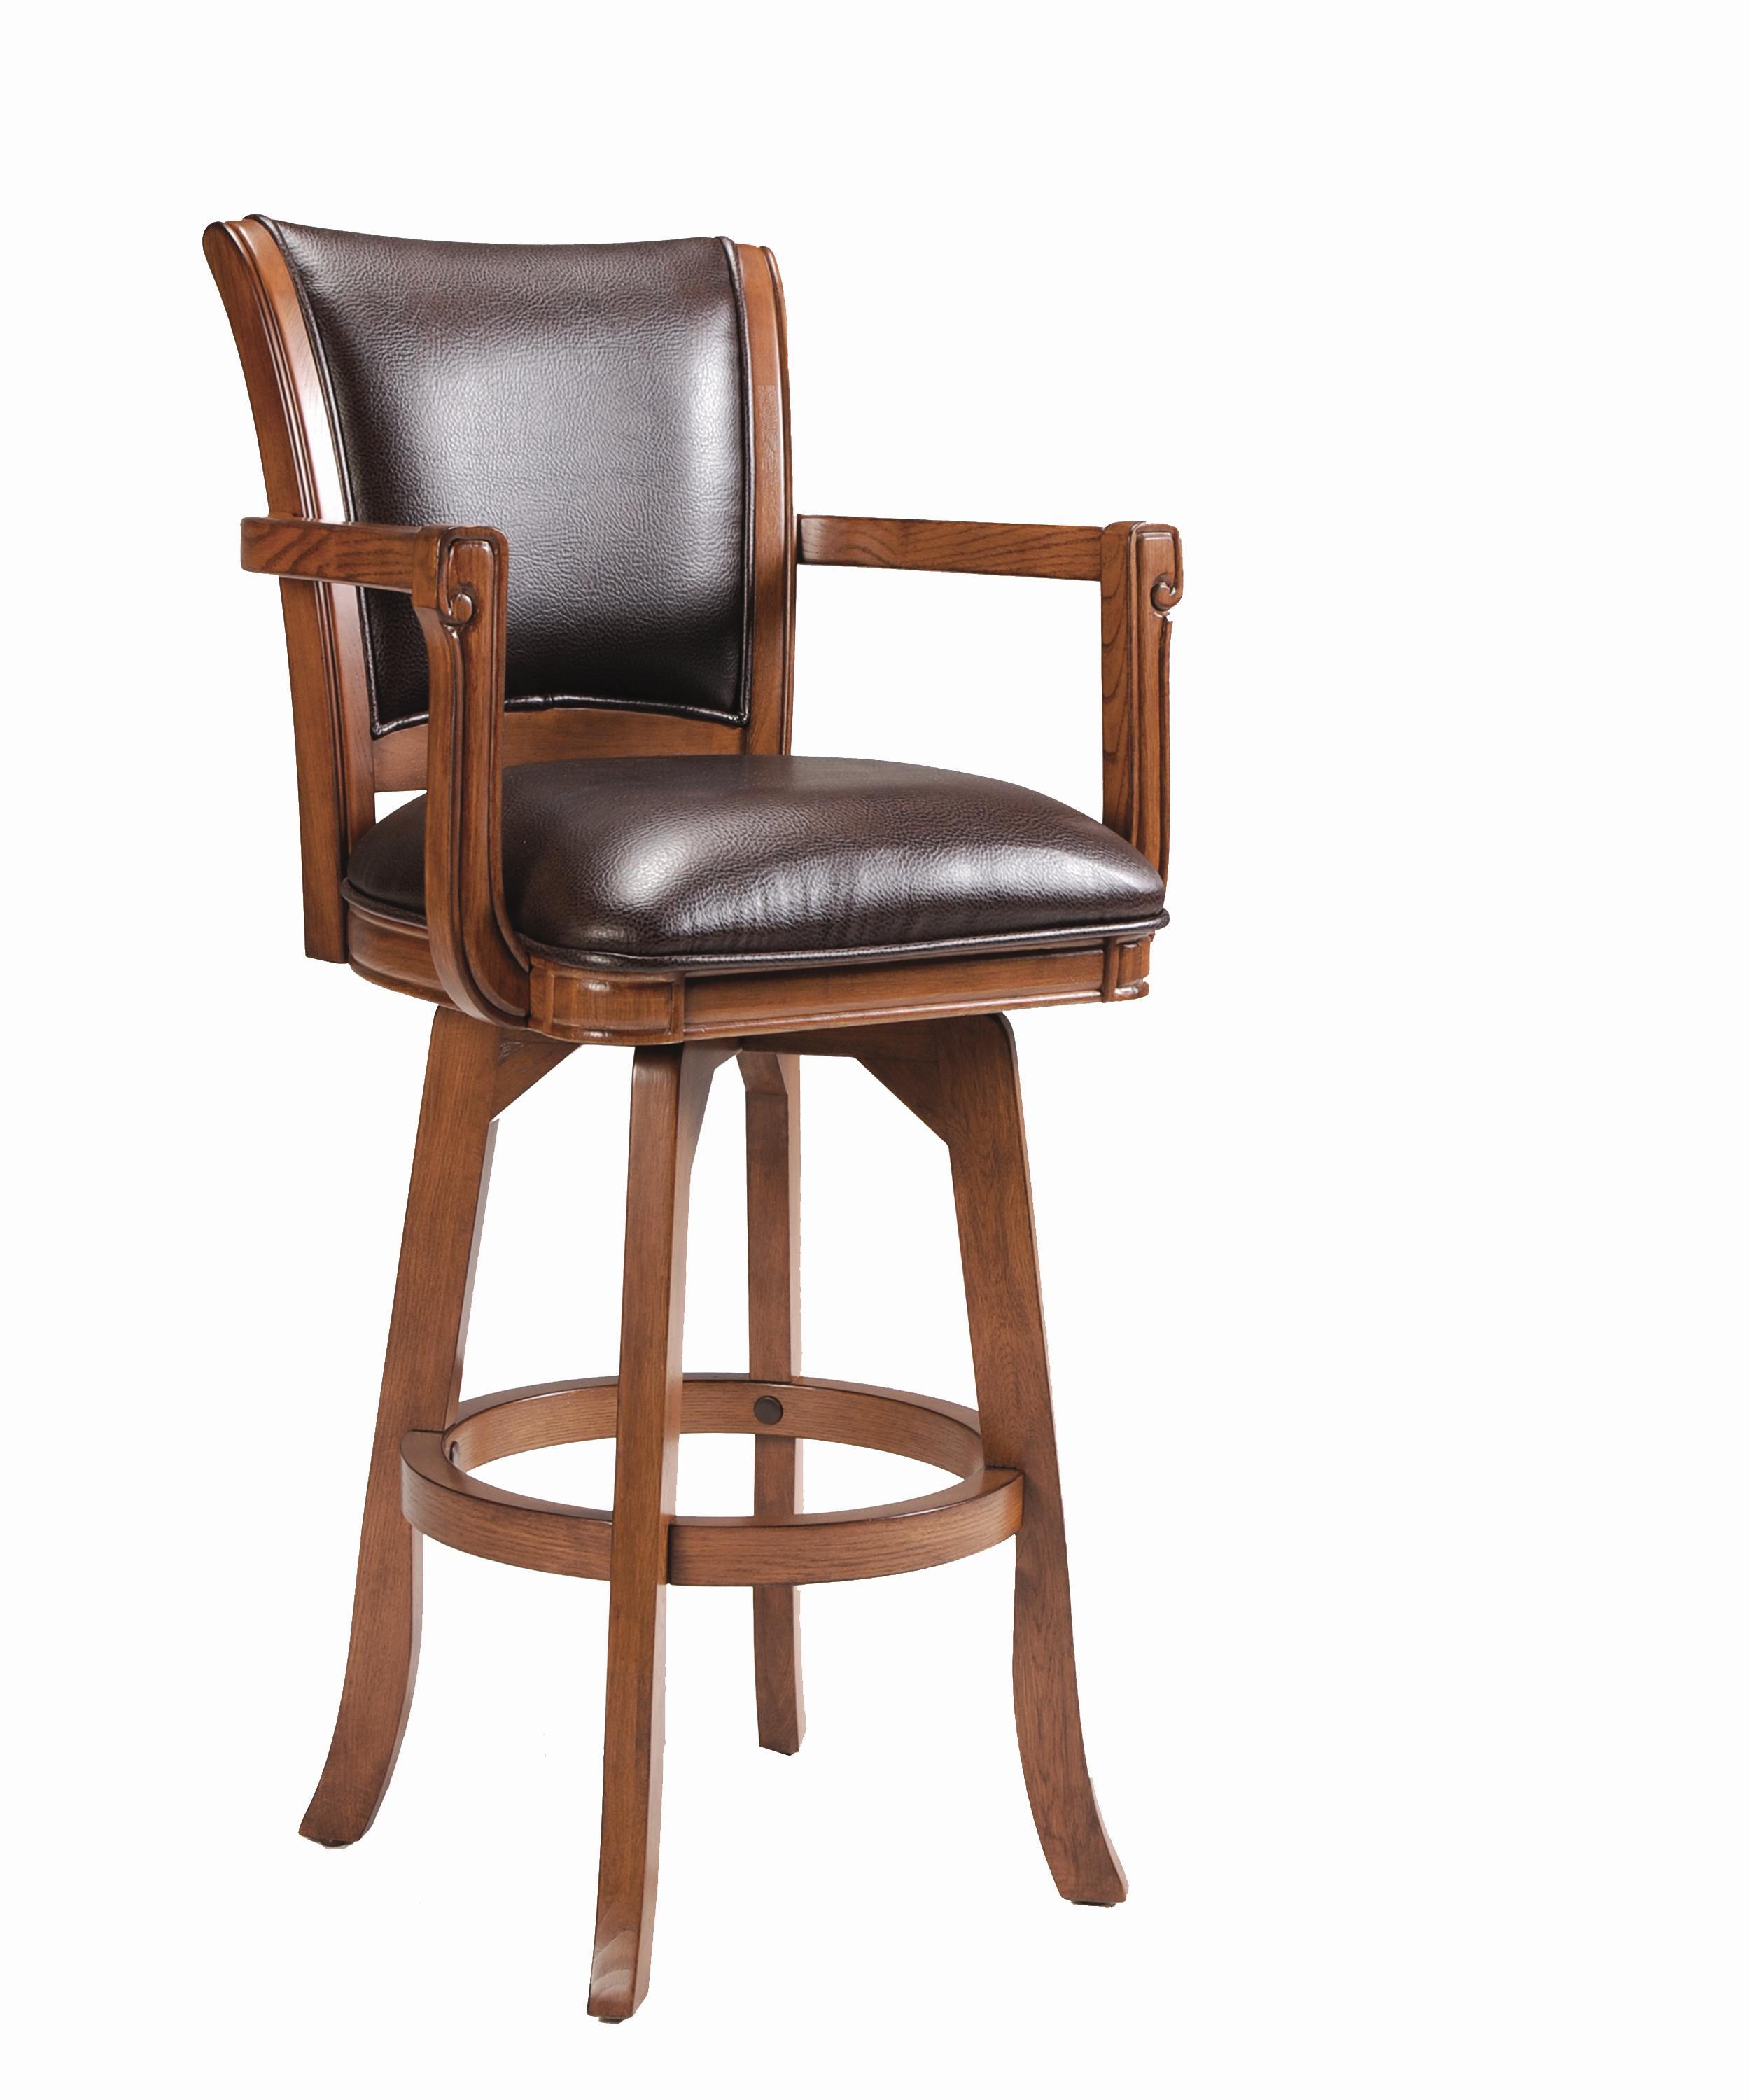 Hillsdale Game Stools Amp Chairs 4186 830 Park View Swivel